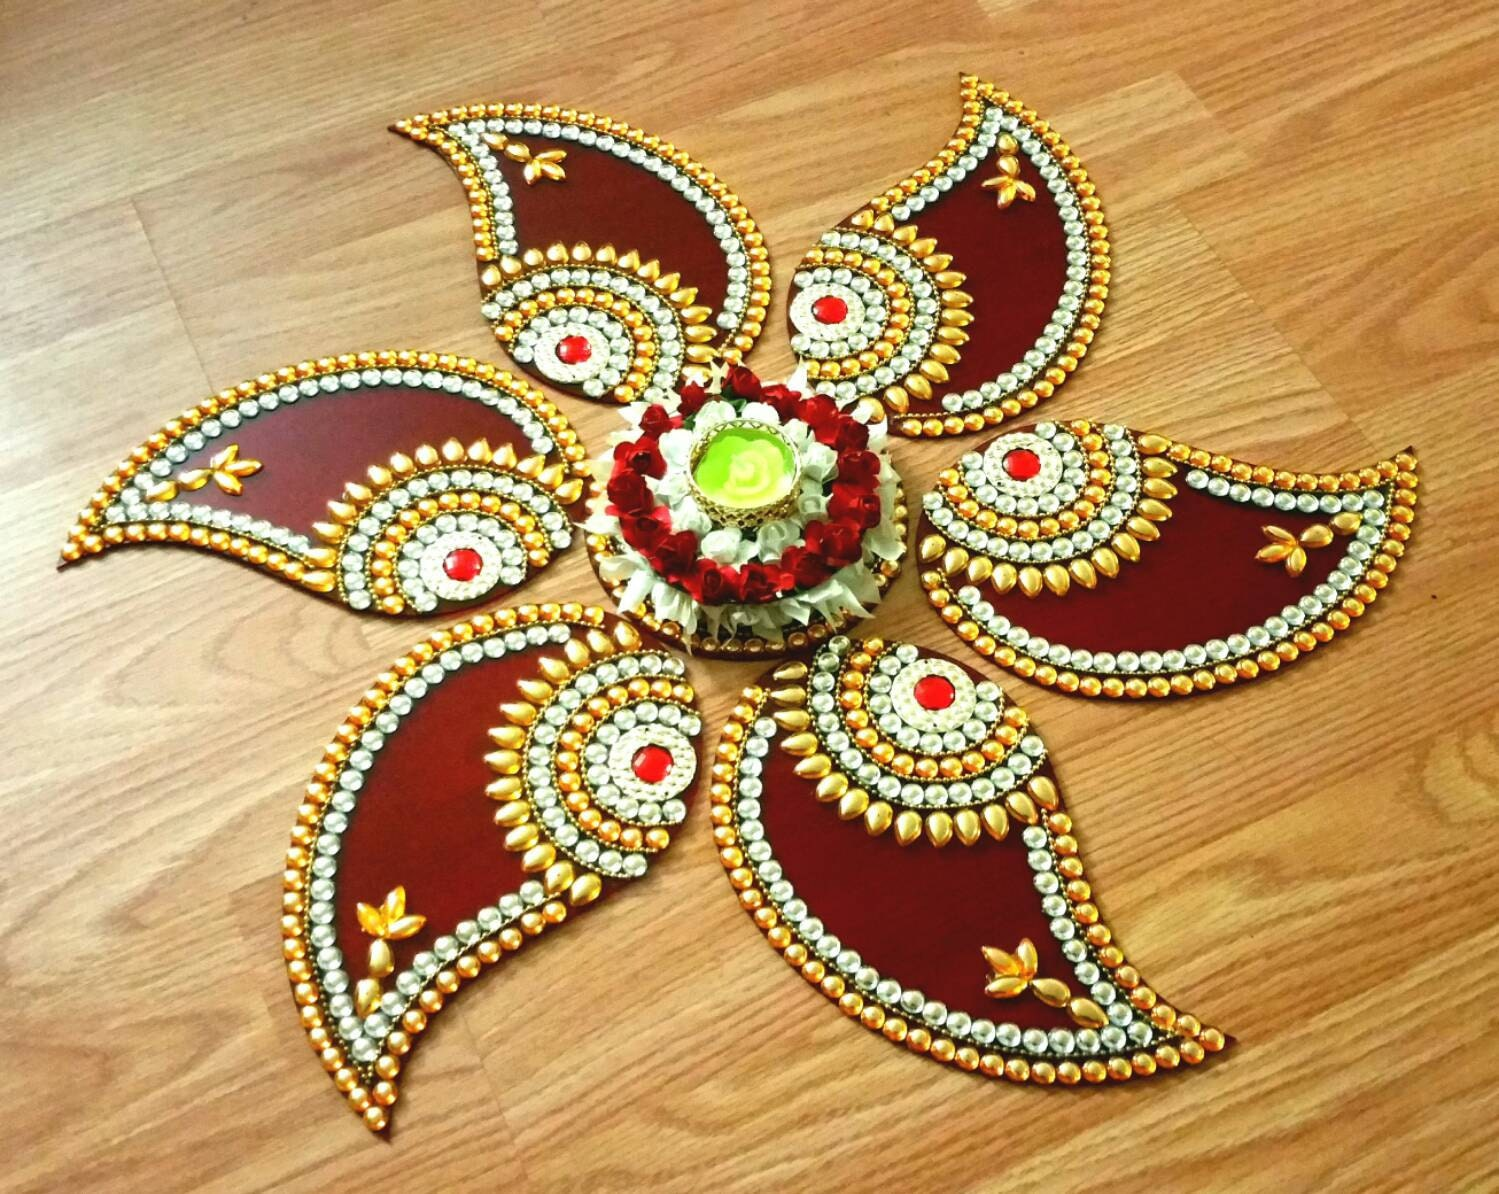 Best Rangoli images for download Free Simple Easy and creative Art